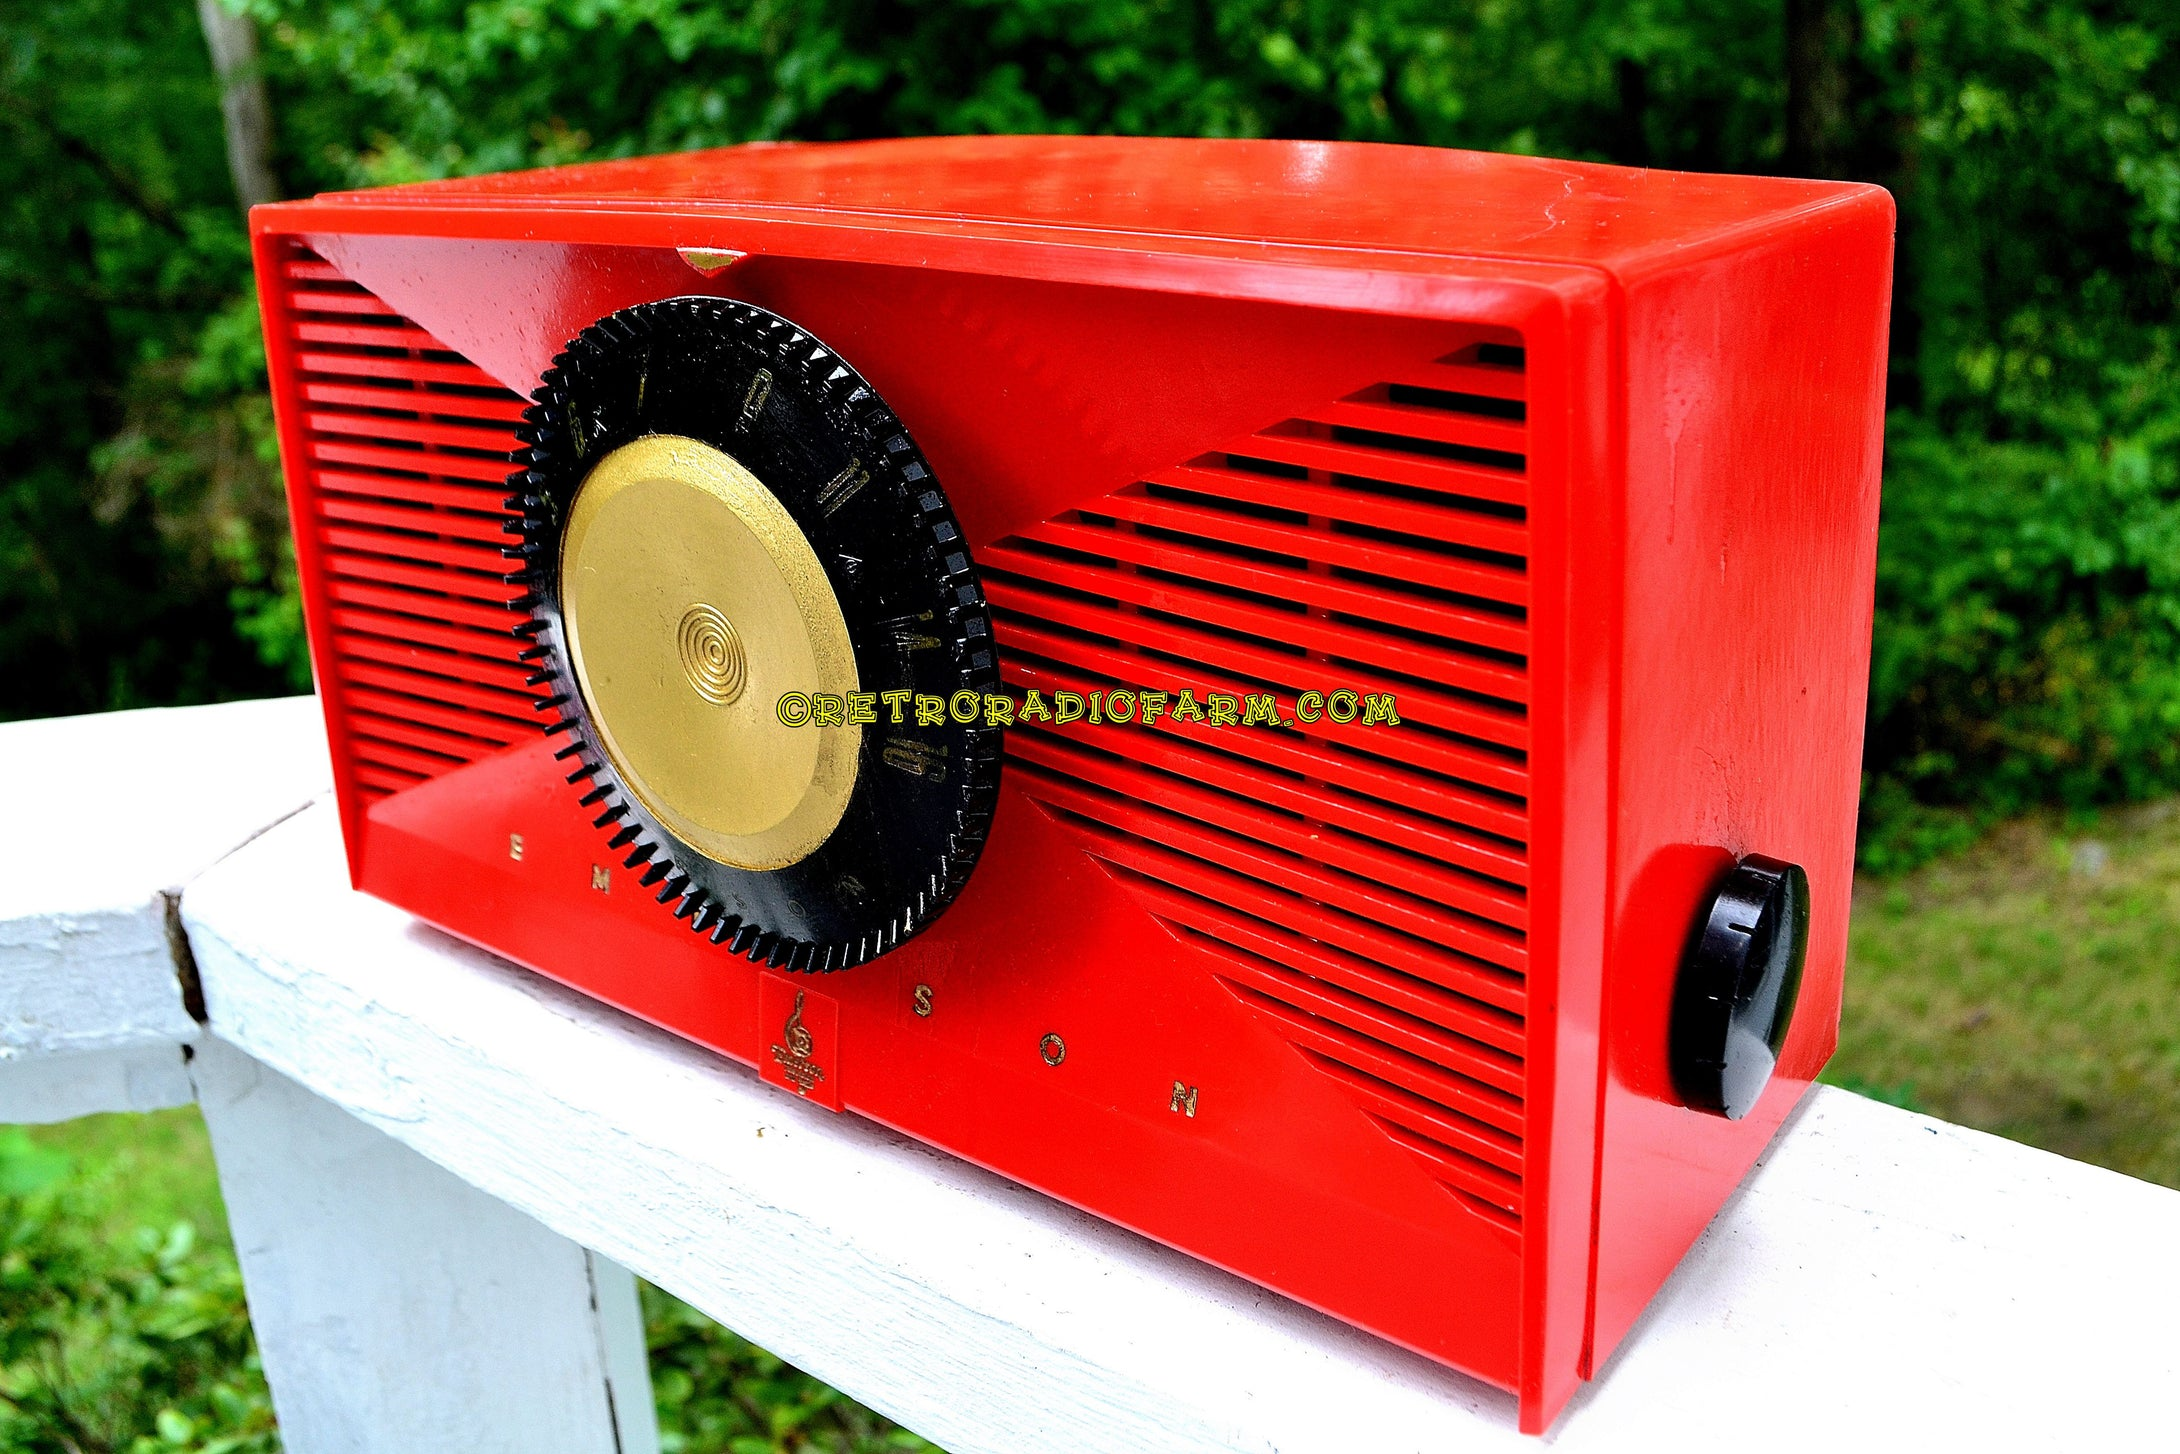 SOLD! - Sept 17, 2017 - MATADOR RED Mid Century Vintage 1955 Emerson Model 812B Tube AM Clock Radio Rare Color Sounds Great! - [product_type} - Emerson - Retro Radio Farm